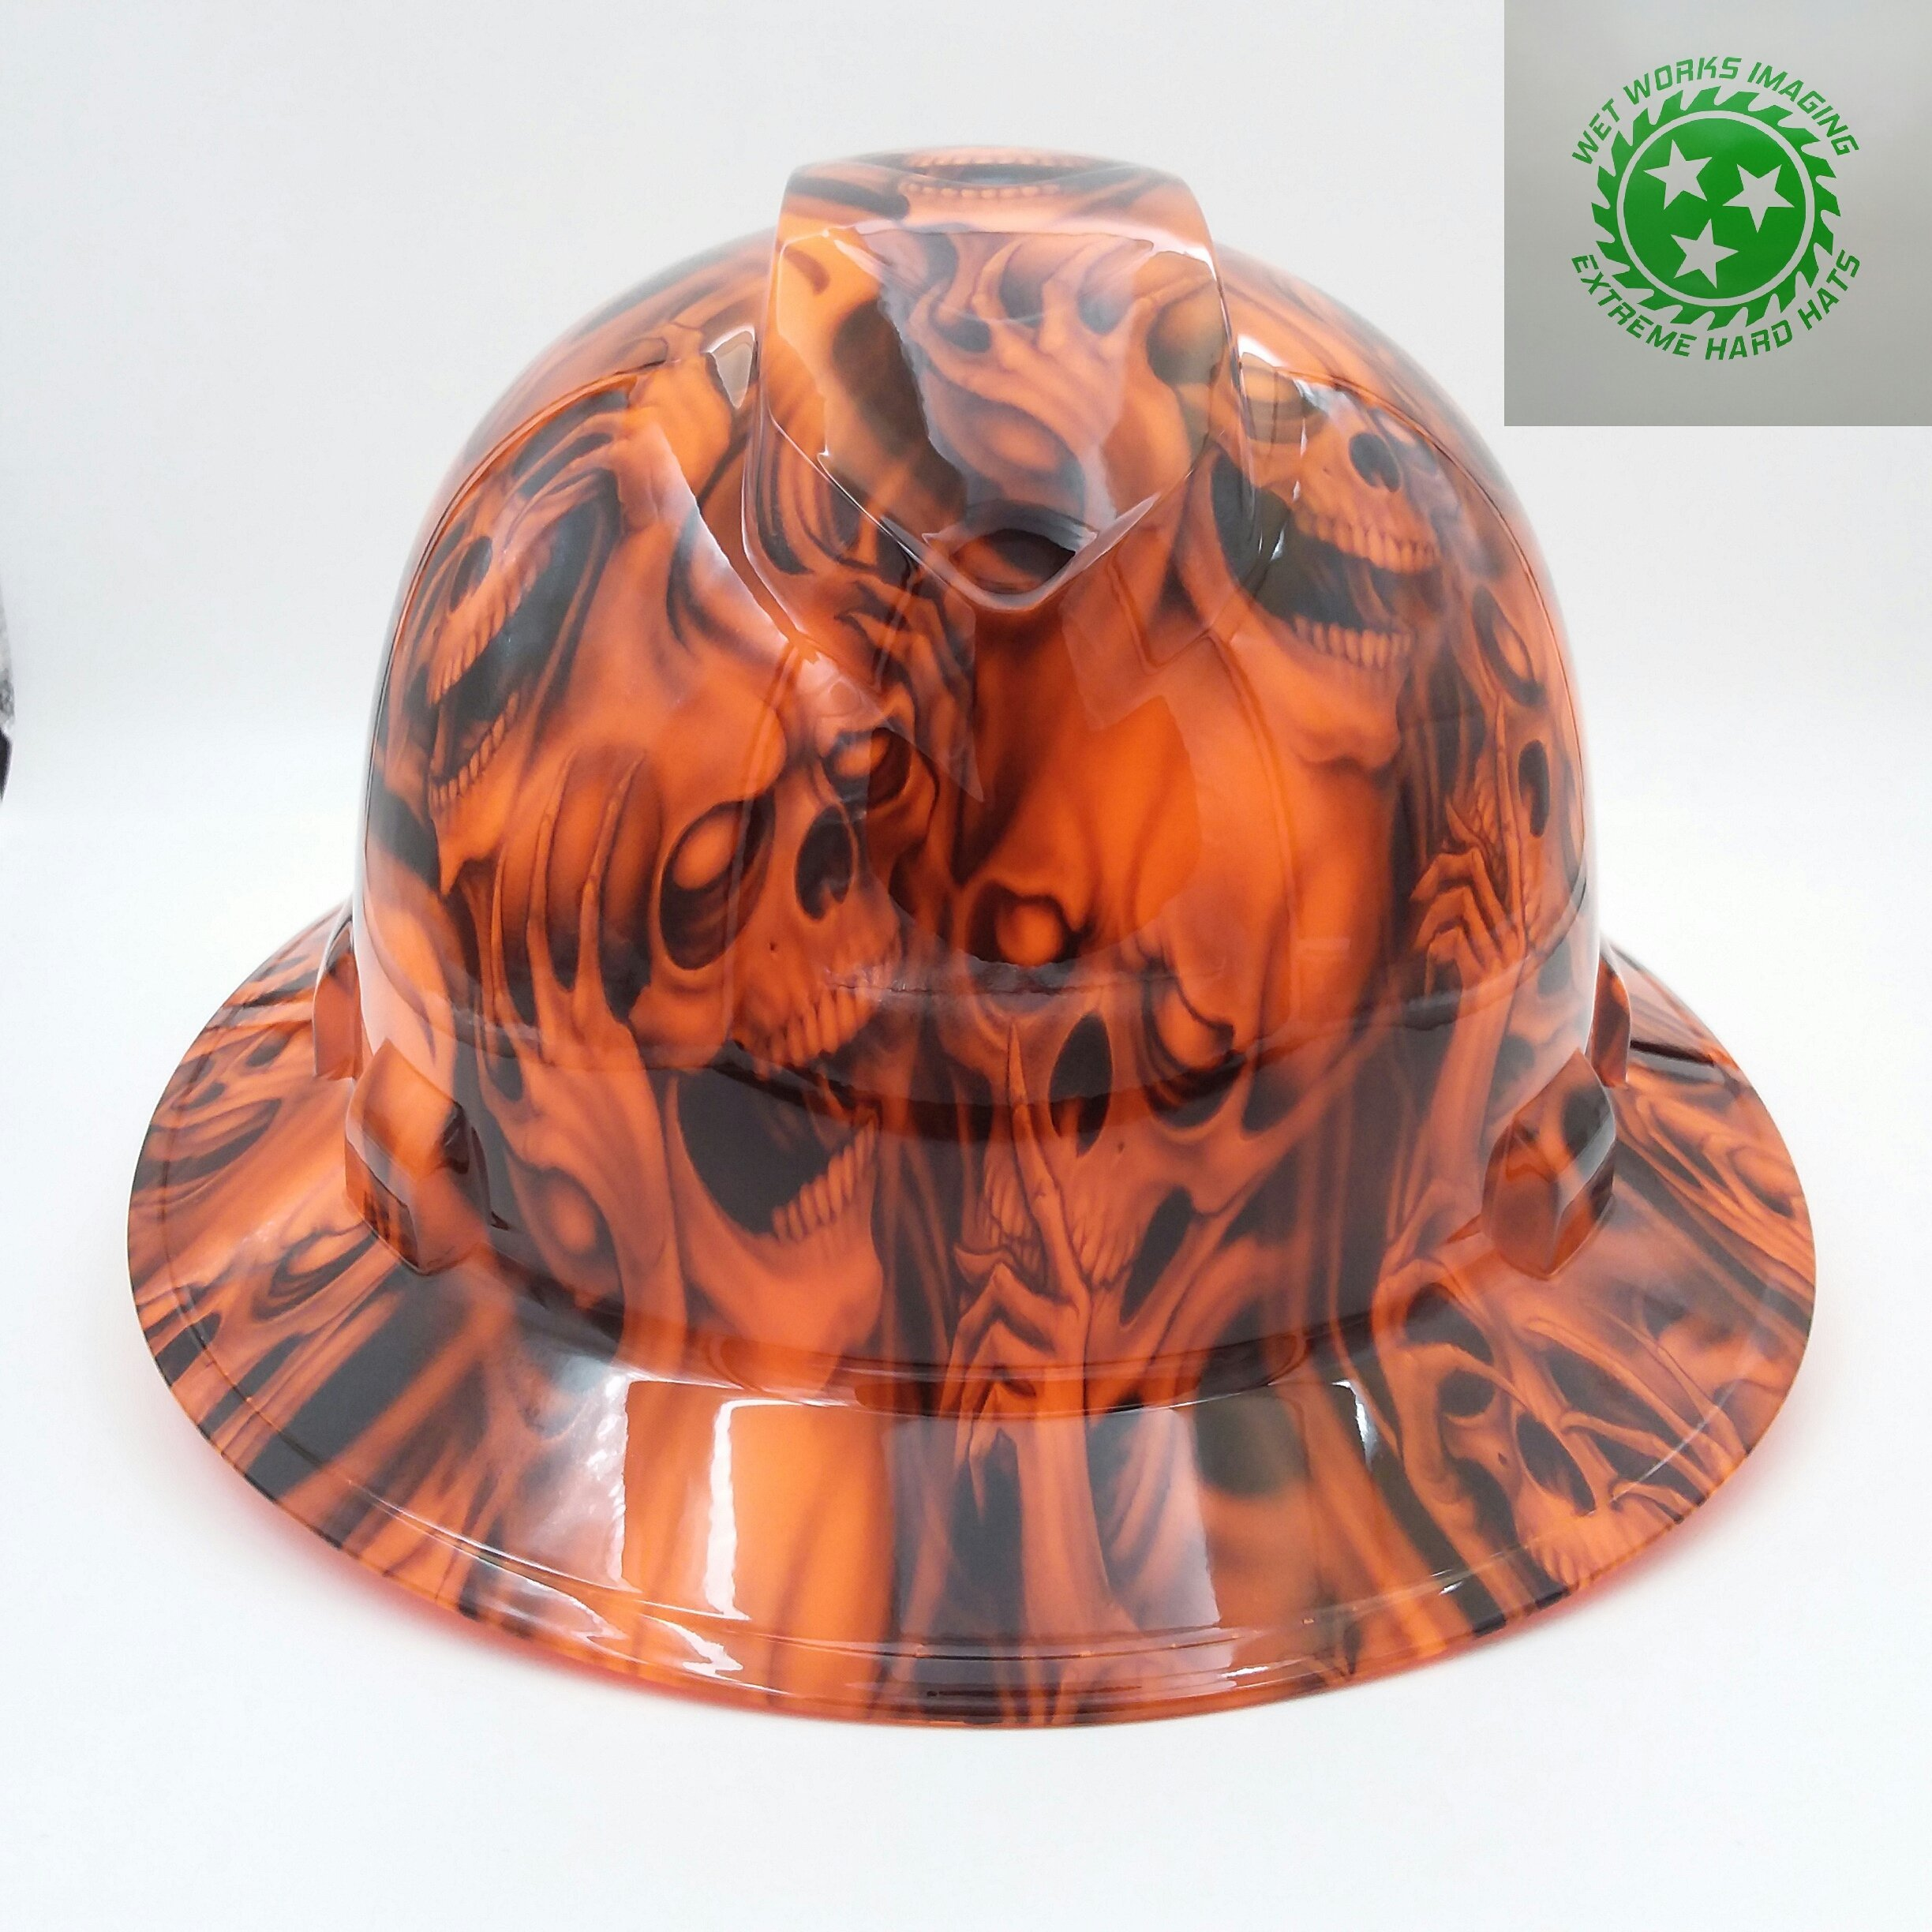 Wet Works Imaging Customized Pyramex Full Brim Orange See No Evil Skulls Hard Hat With Ratcheting Suspension by Wet Works Imaging (Image #1)